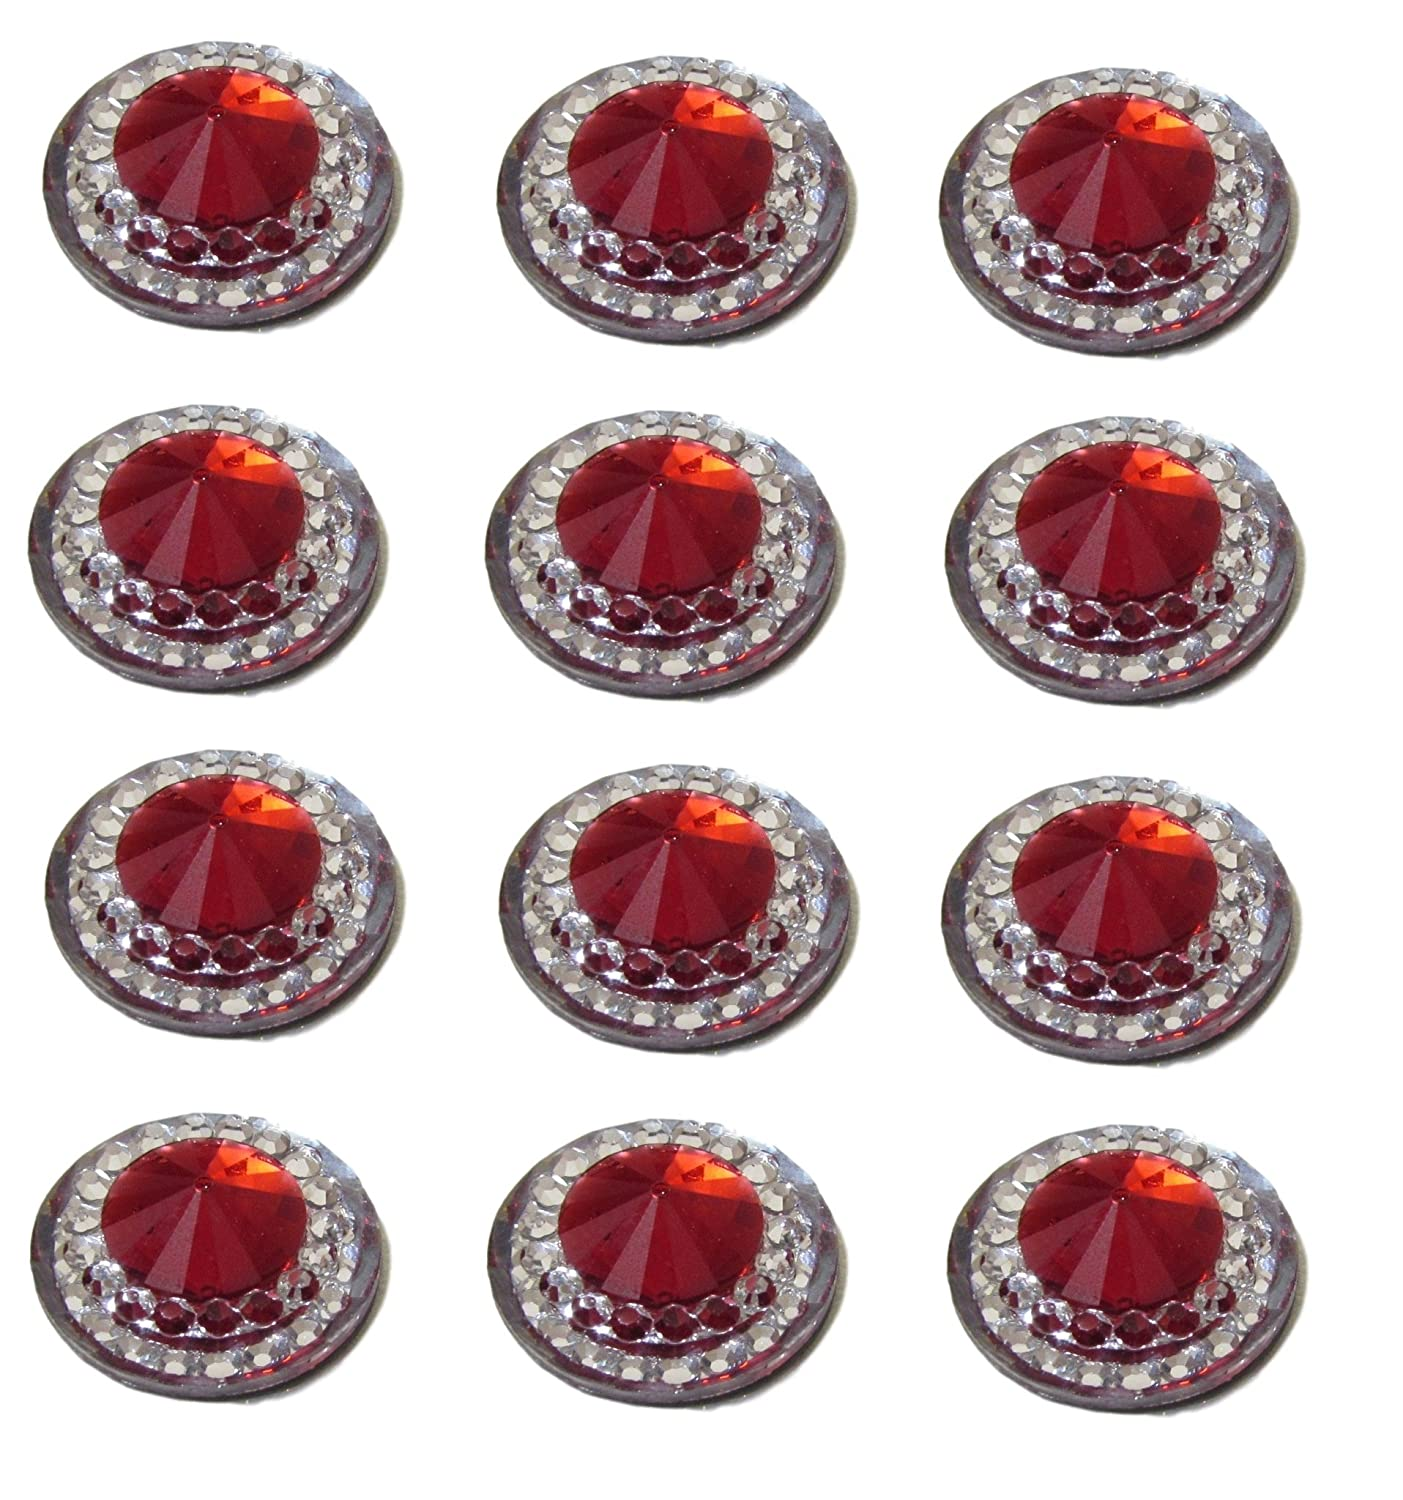 40 x Self Adhesive Ruby Red Round Diamante Rhinestones Acrylic Crystals Stick on Gems For Card Making Syntego